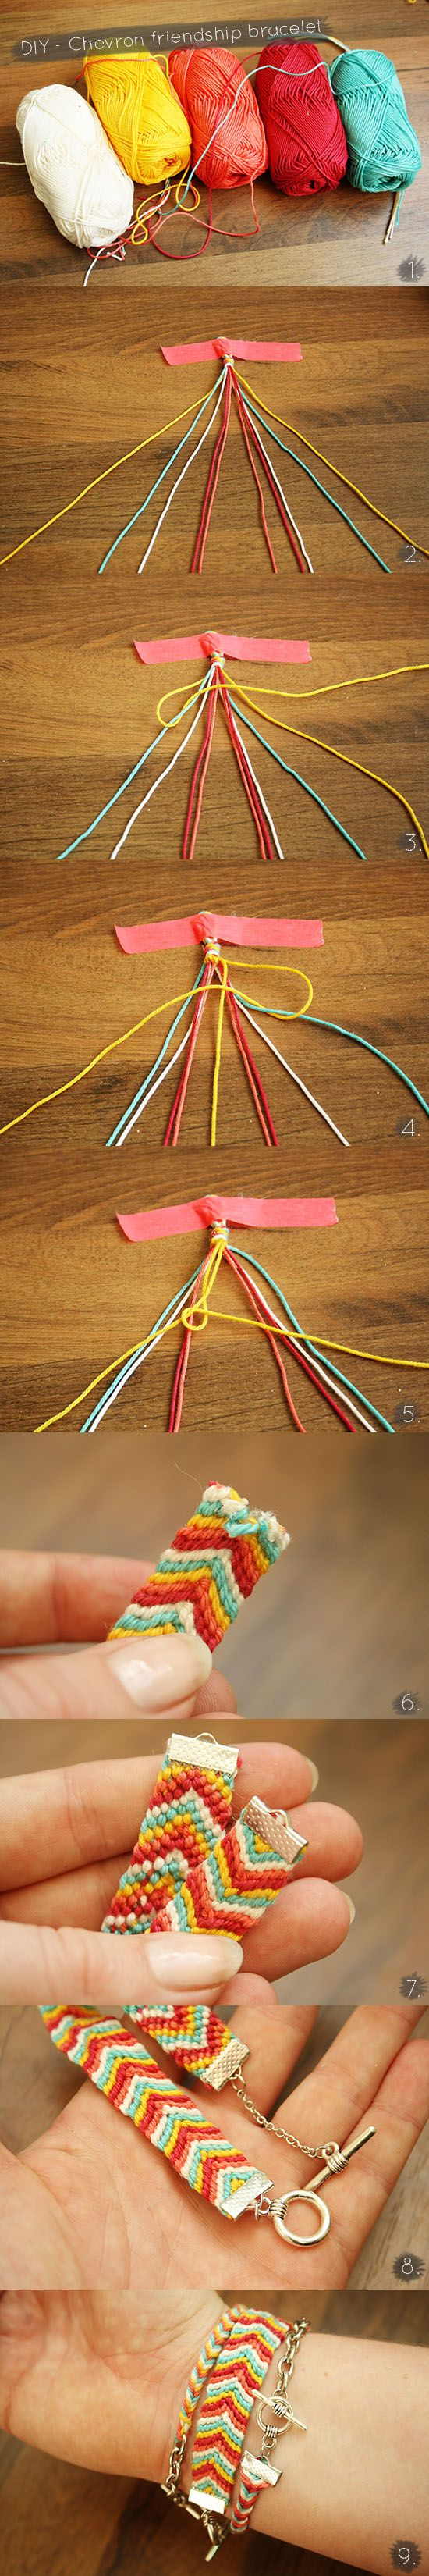 DIY – Chevron friendship bracelet.